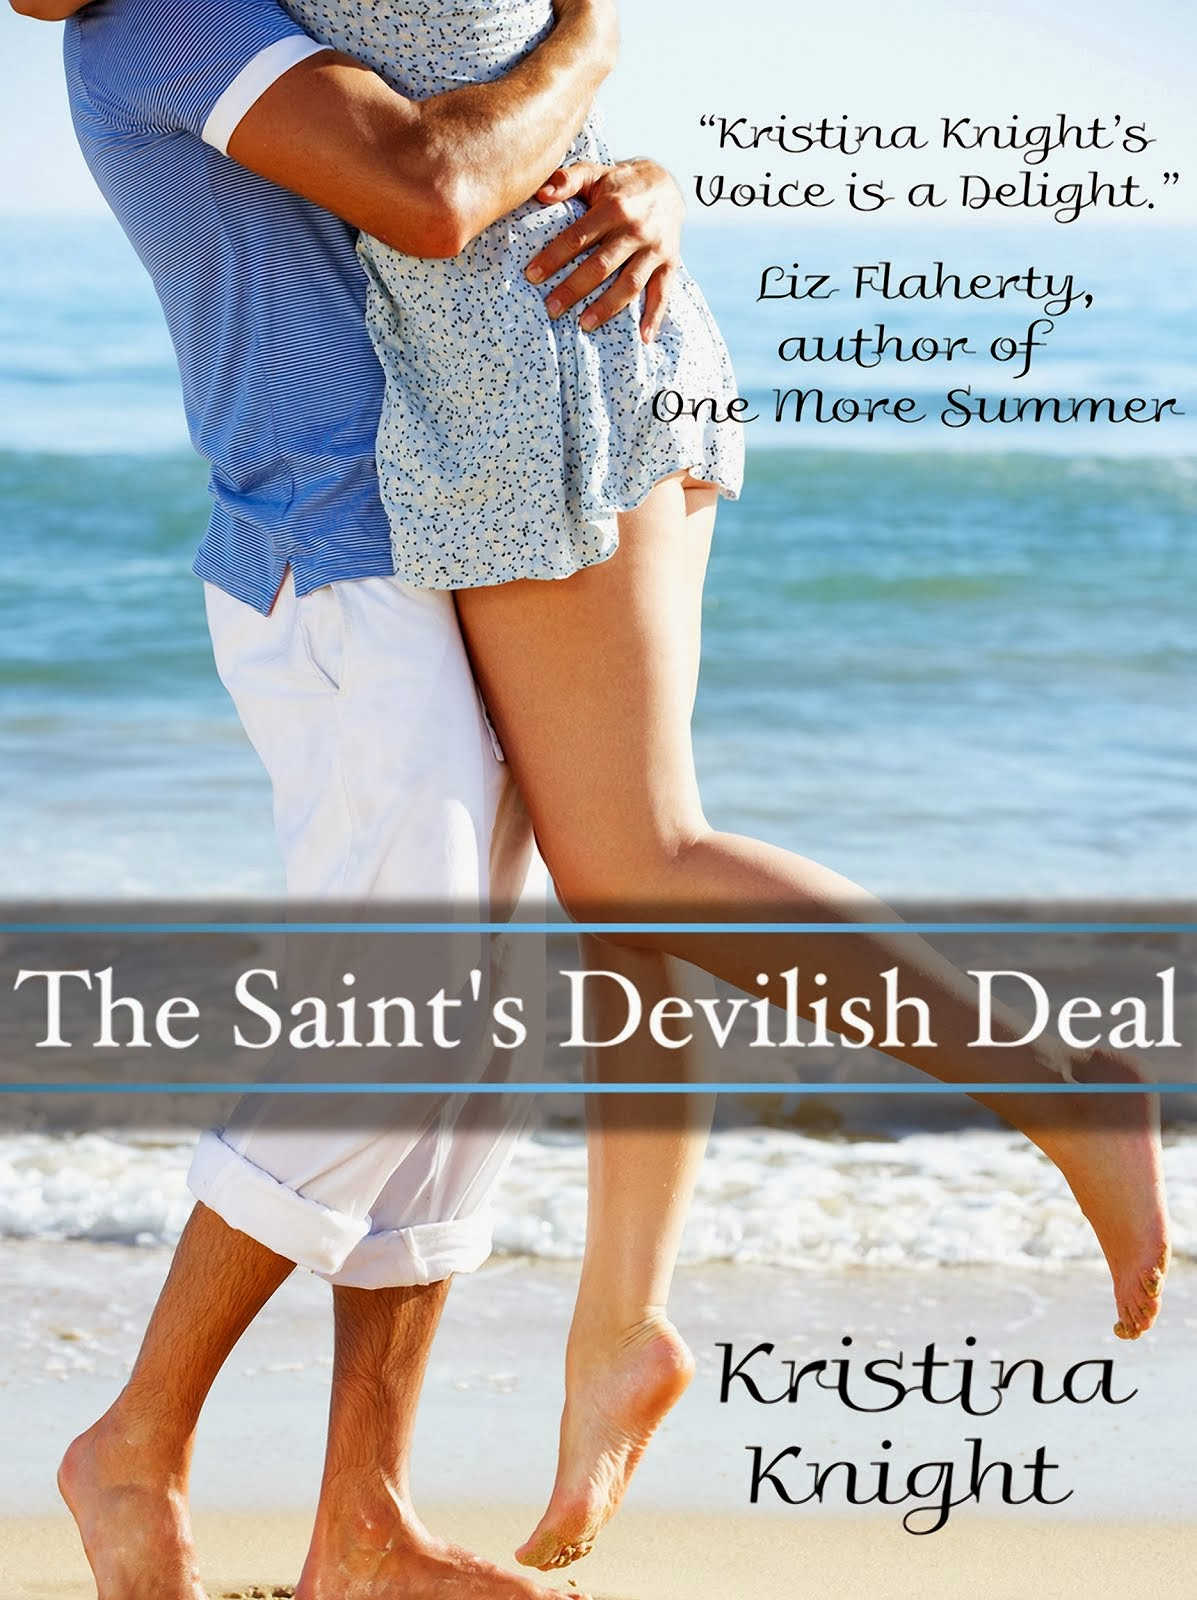 The Saint's Devilish Deal